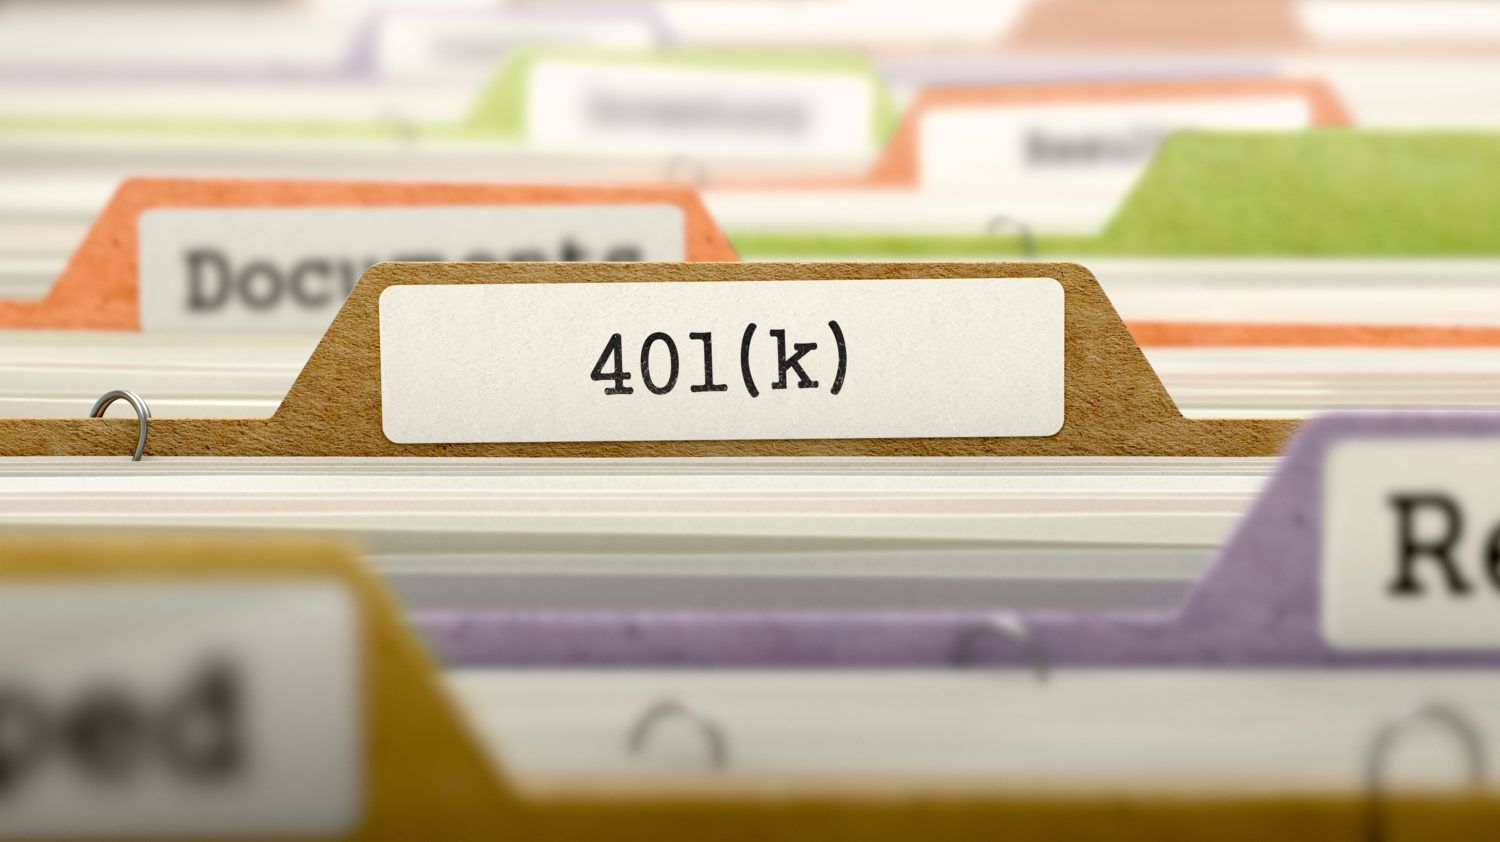 5 Reasons You Should Move an Old 401(k) What causes high